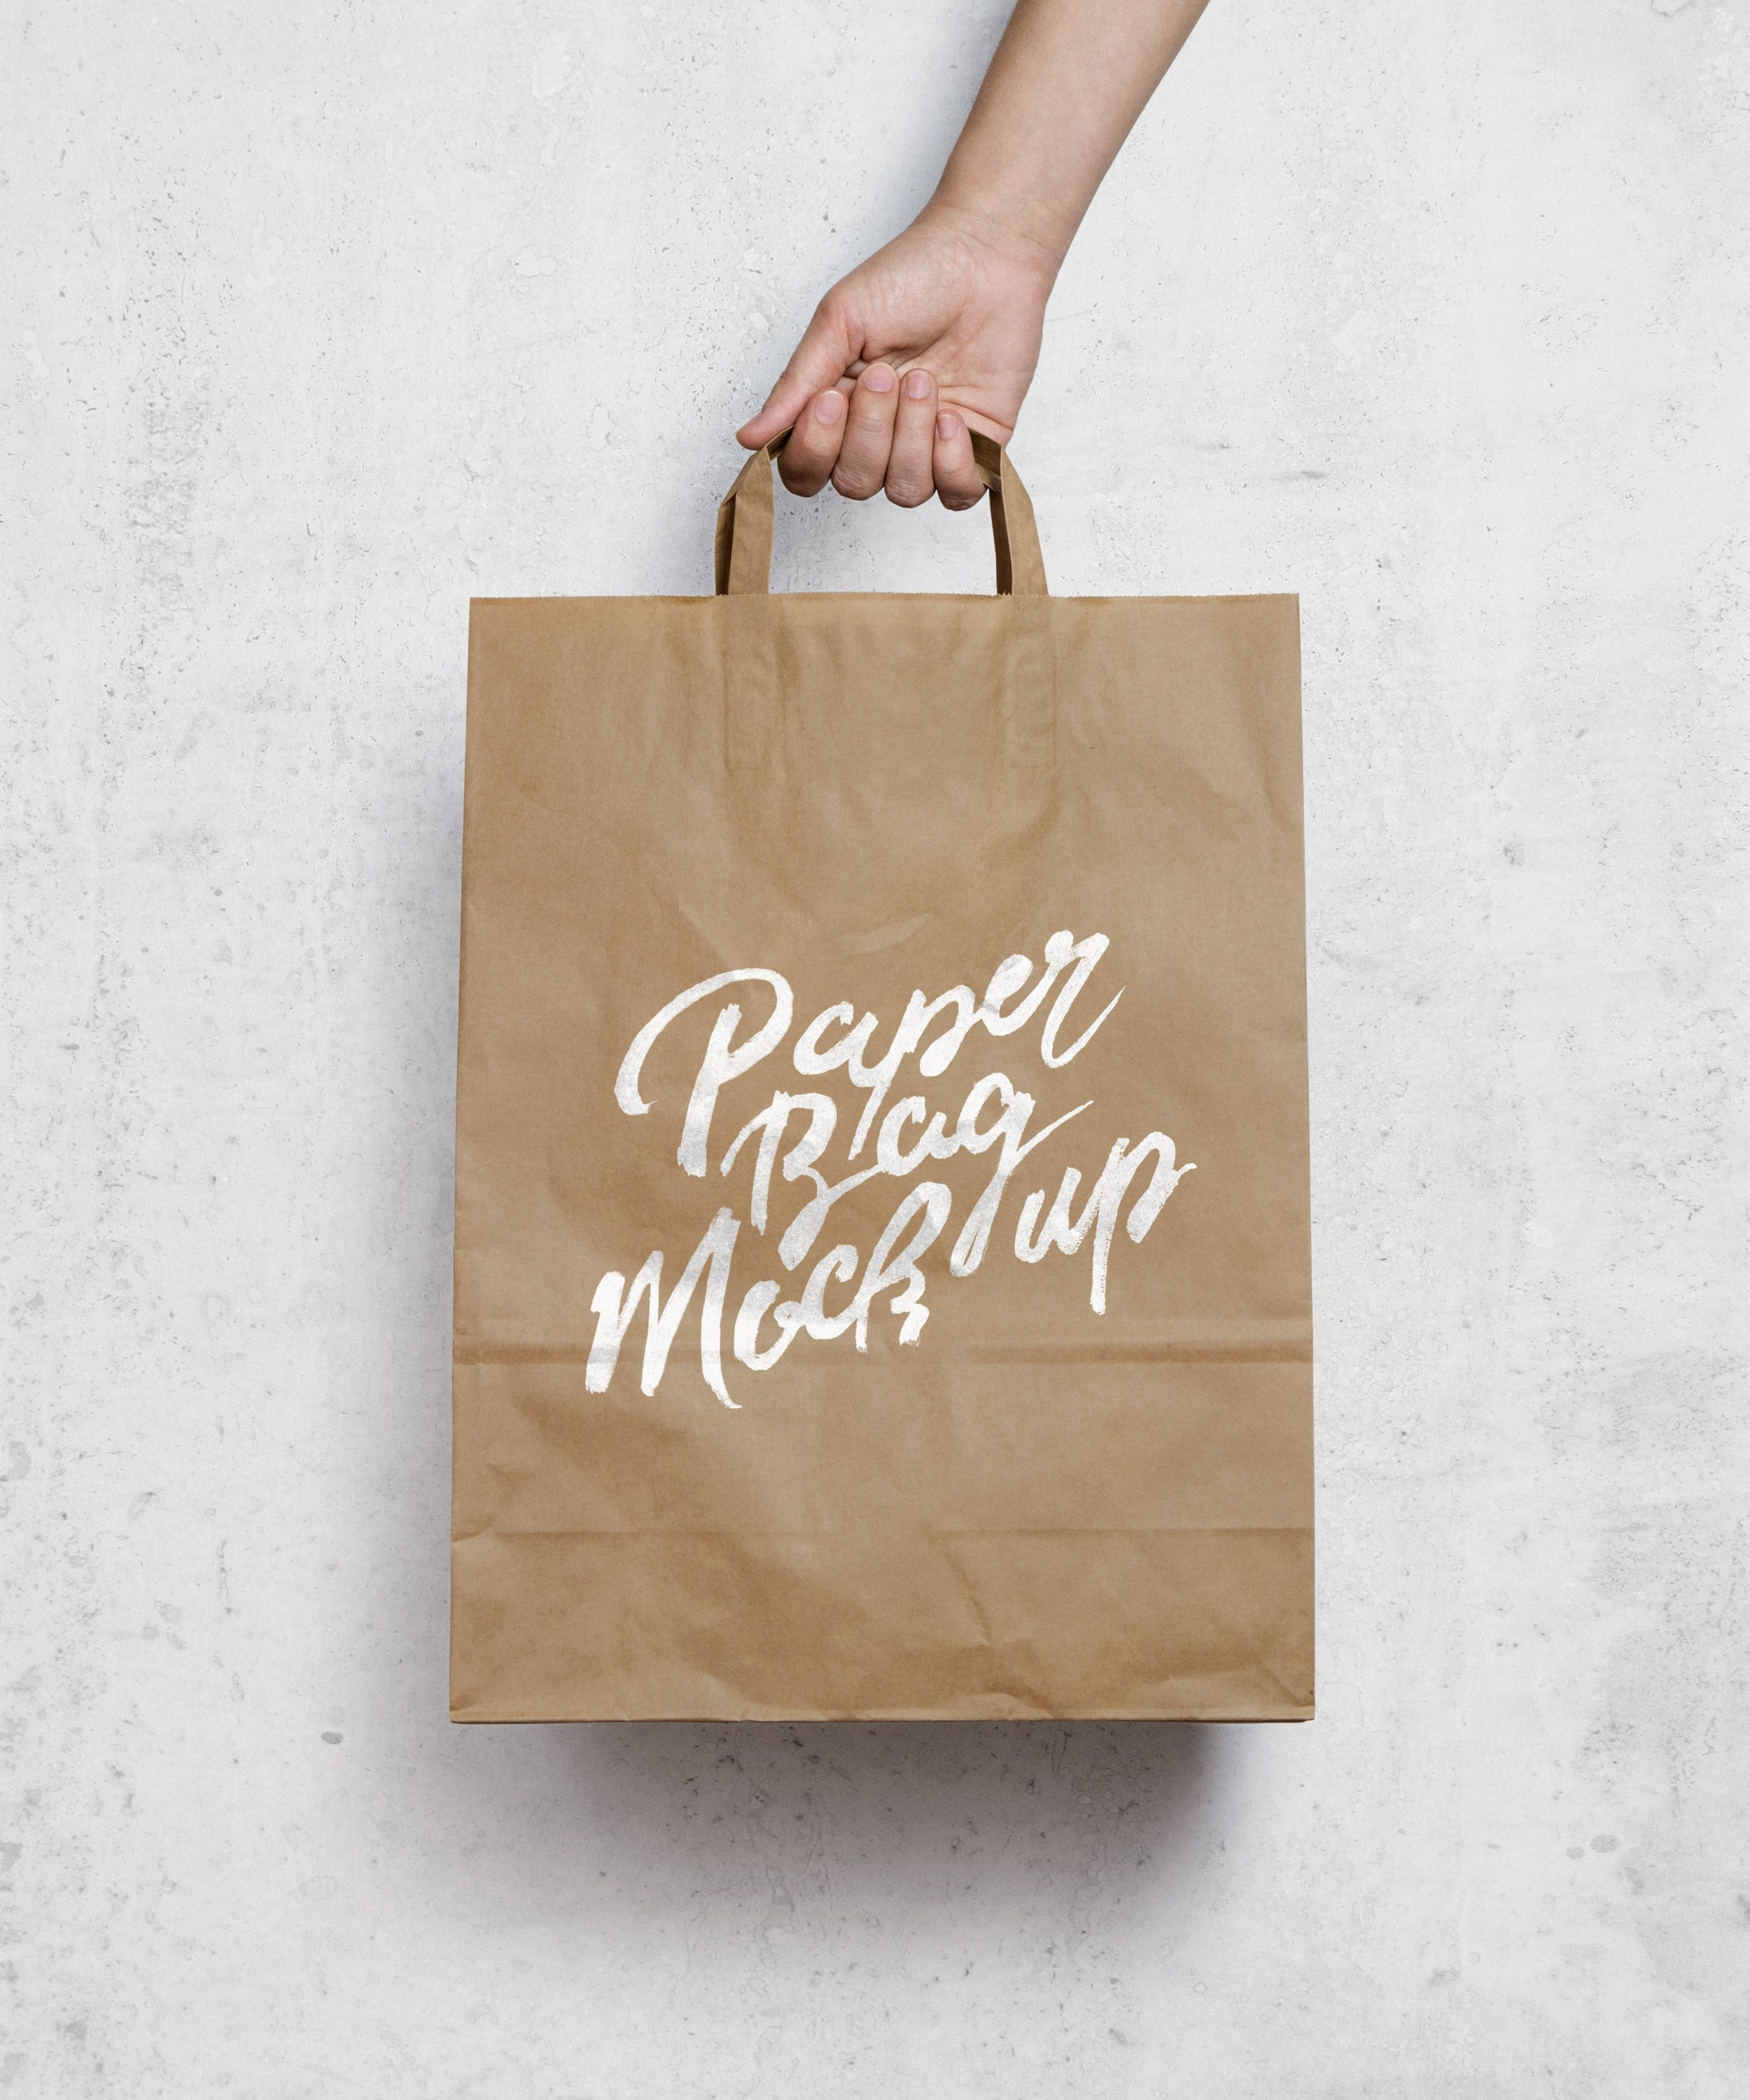 5613+ Paper Bag Mockup Black Photoshop File